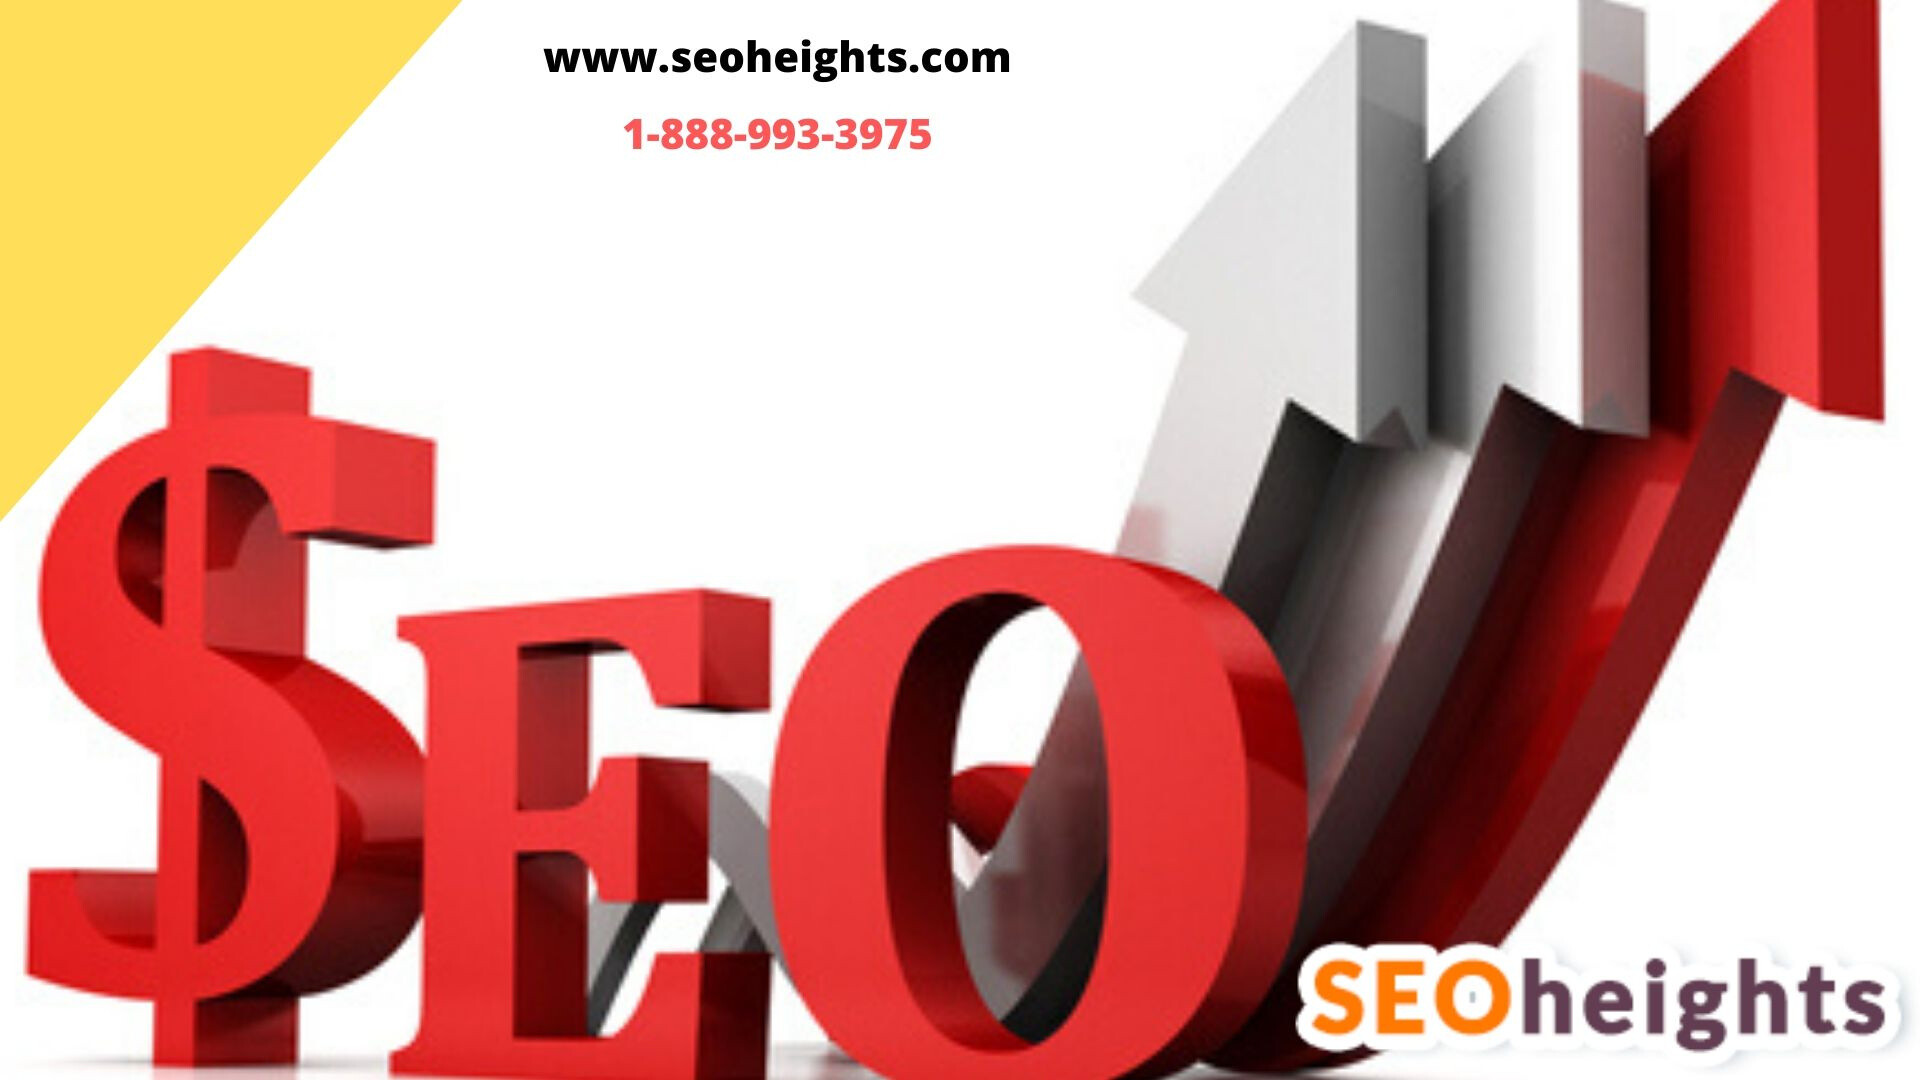 How Can Websites Maintain Consistent SEO Rankings?